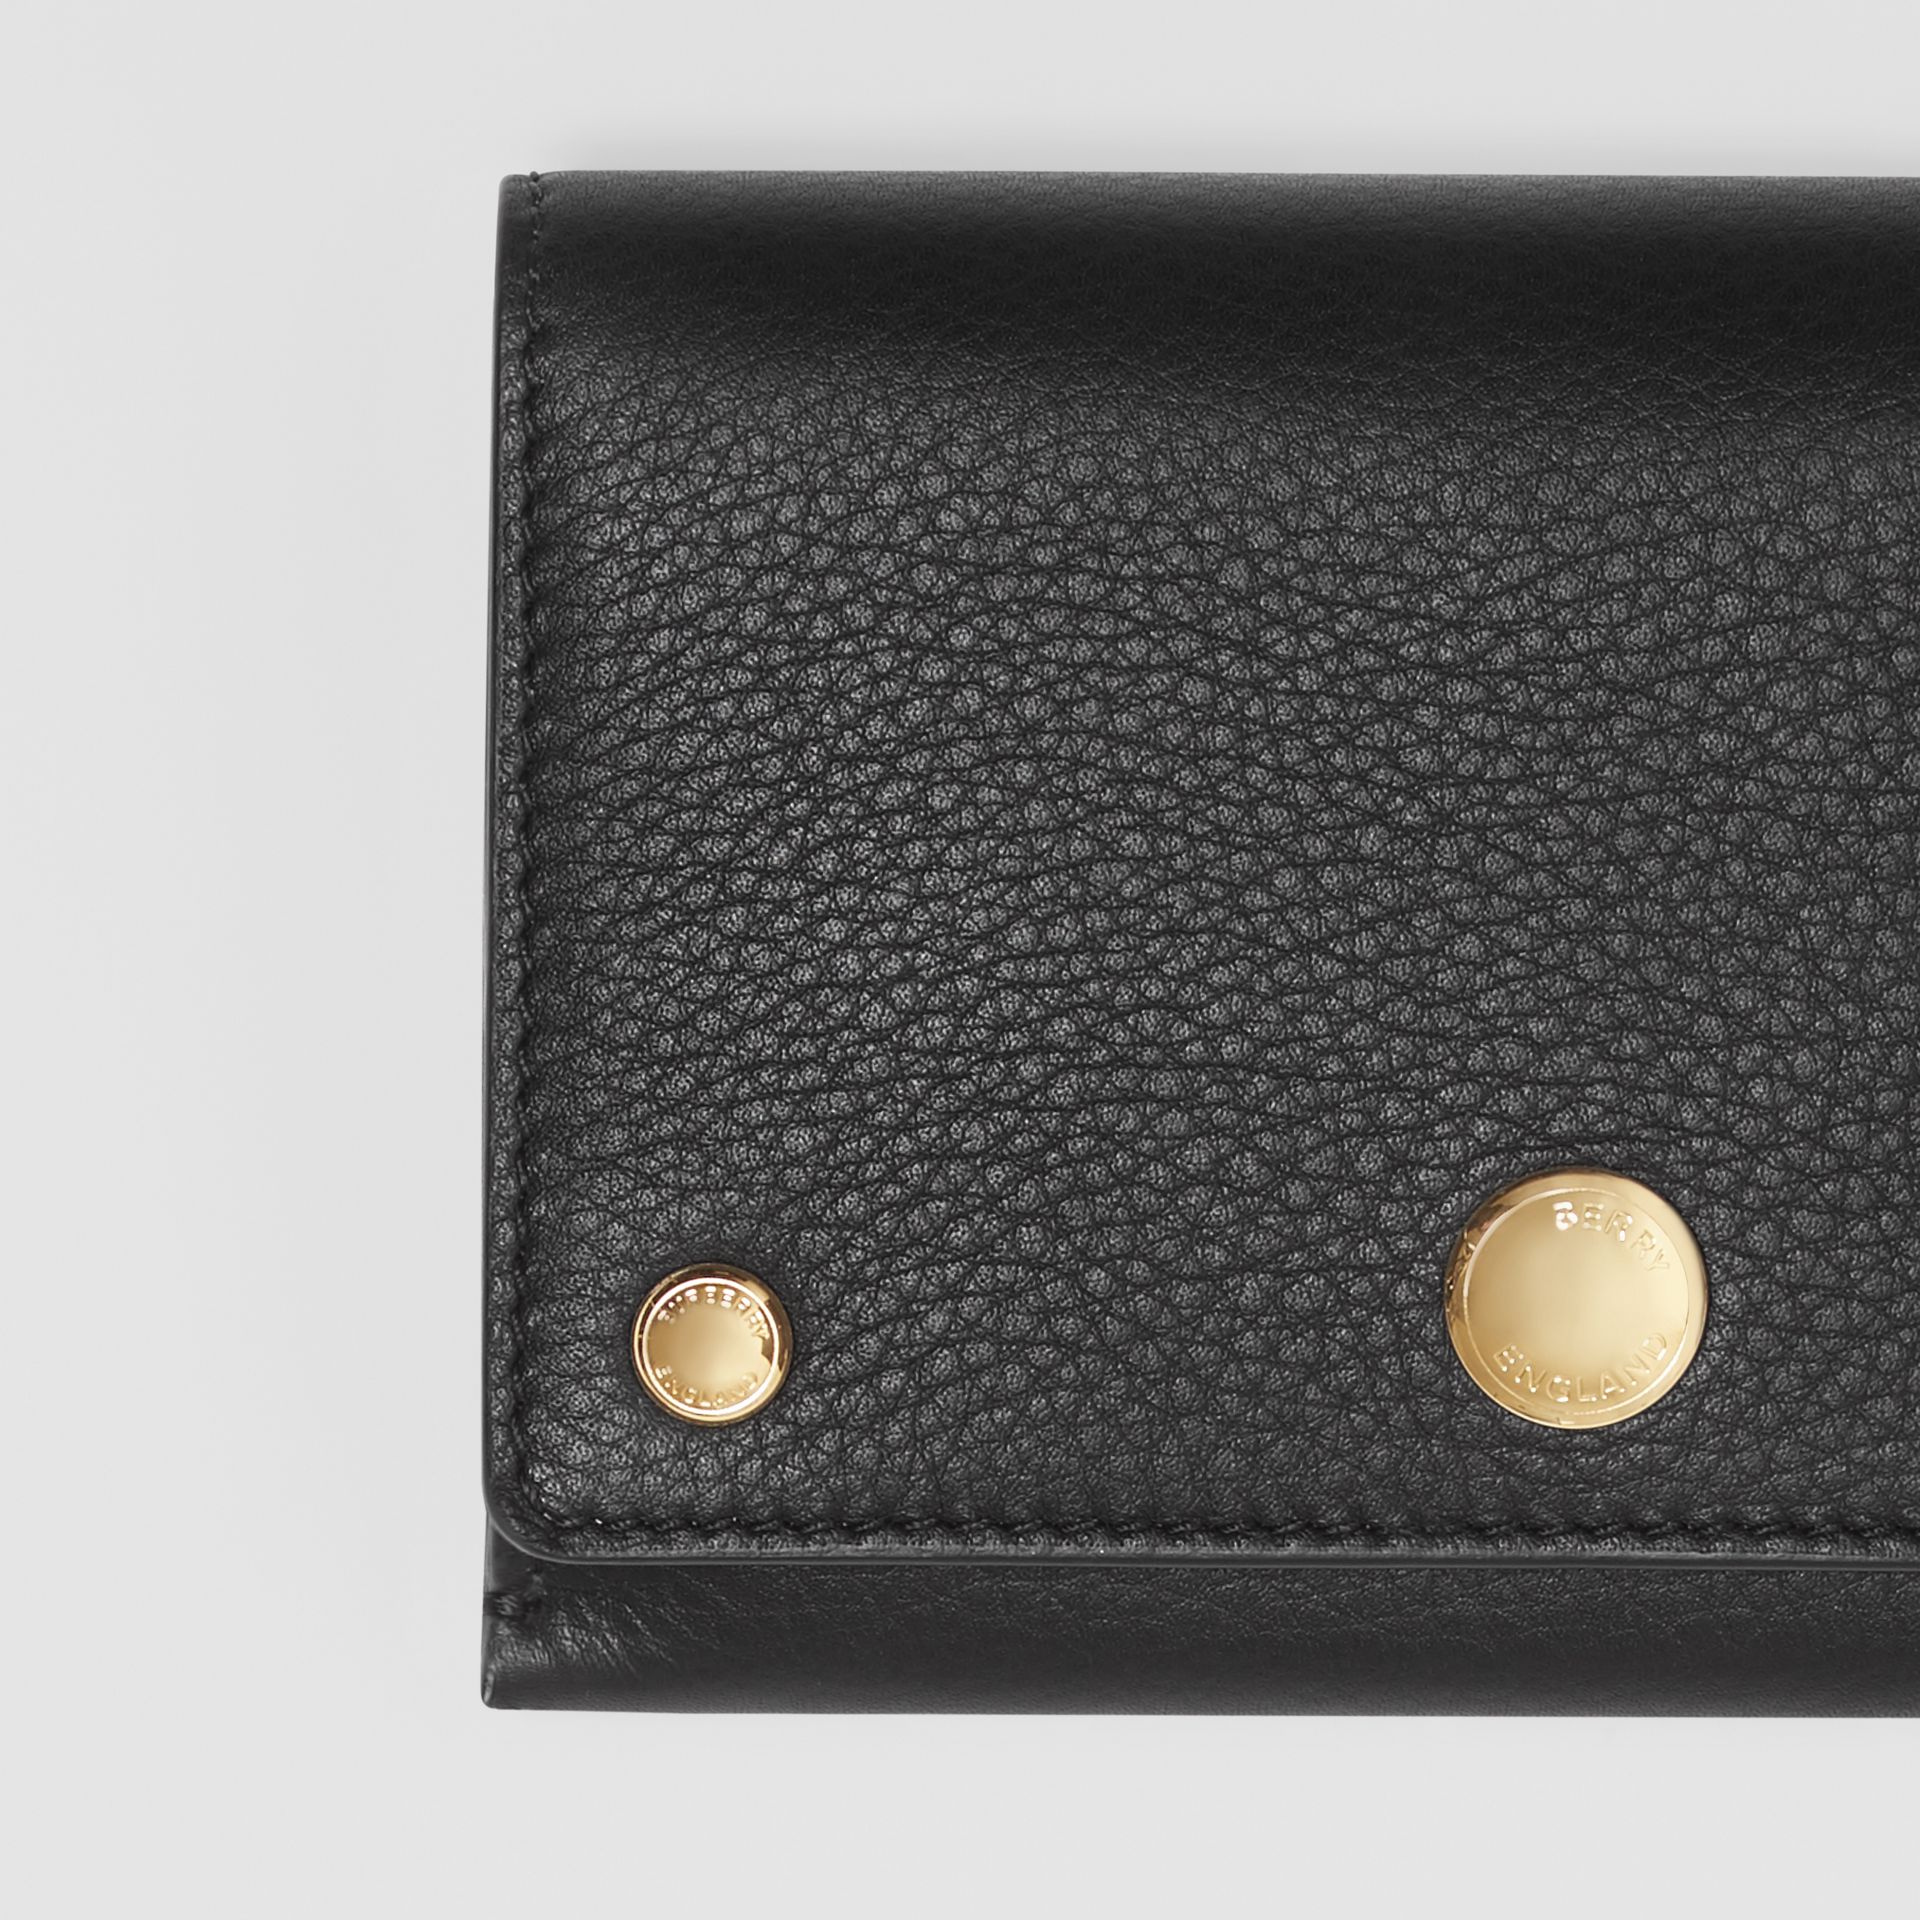 Triple Stud Leather Folding Wallet in Black - Women | Burberry - gallery image 1